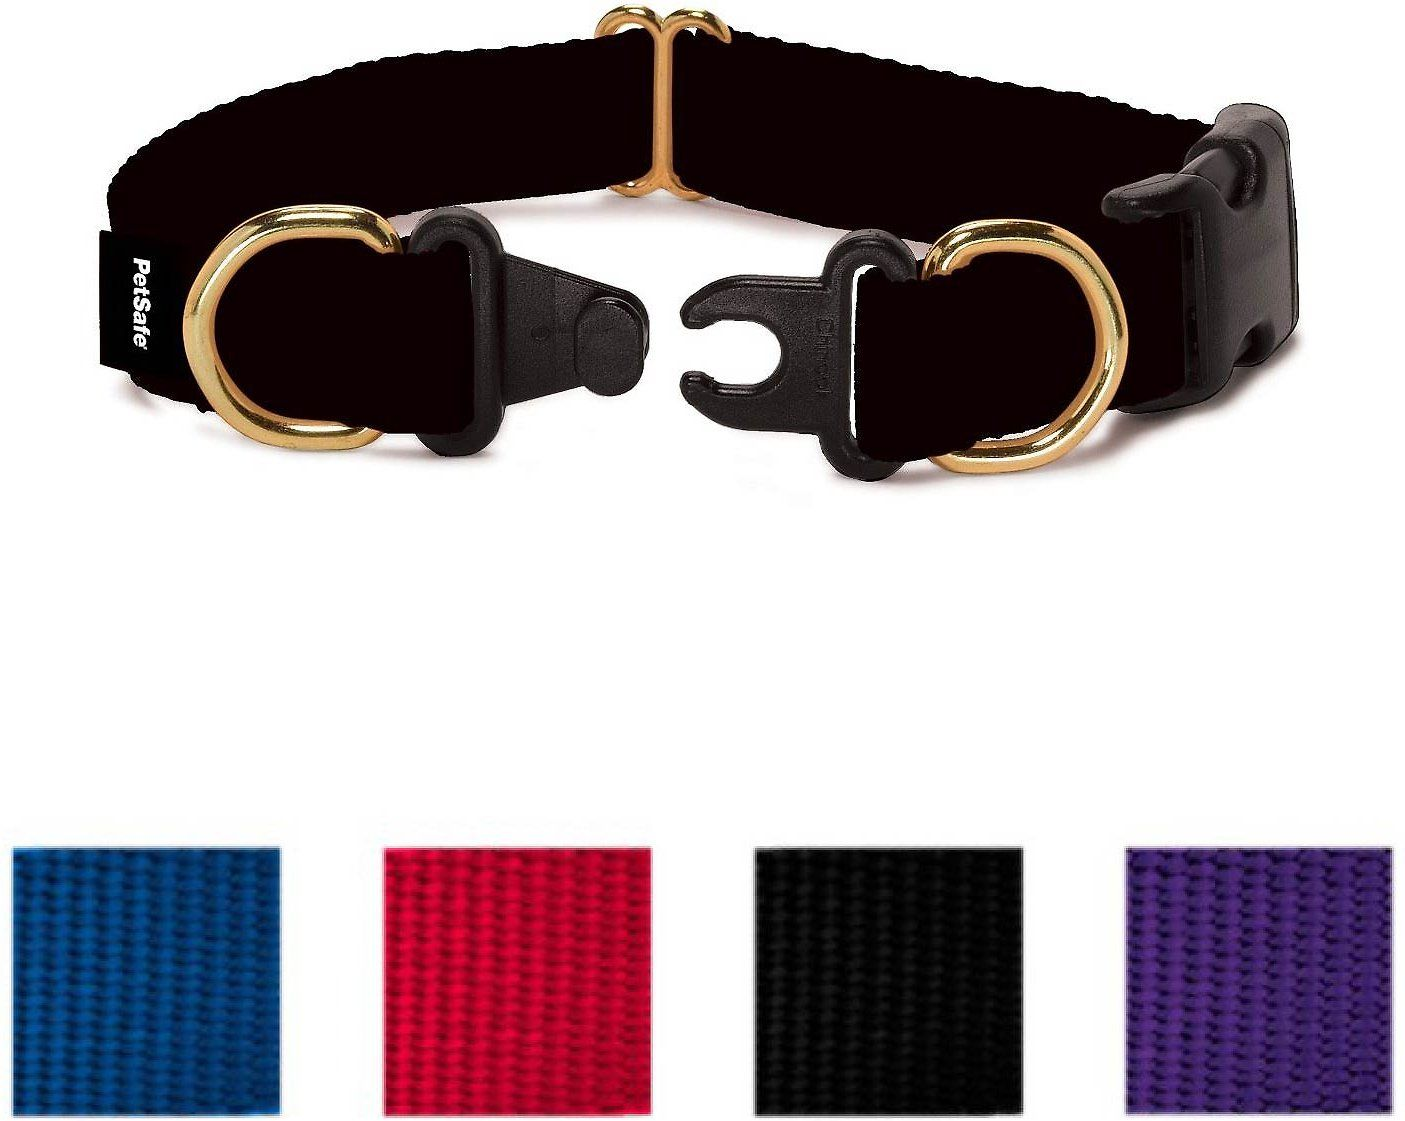 This collar is designed to prevent strangulation accidents